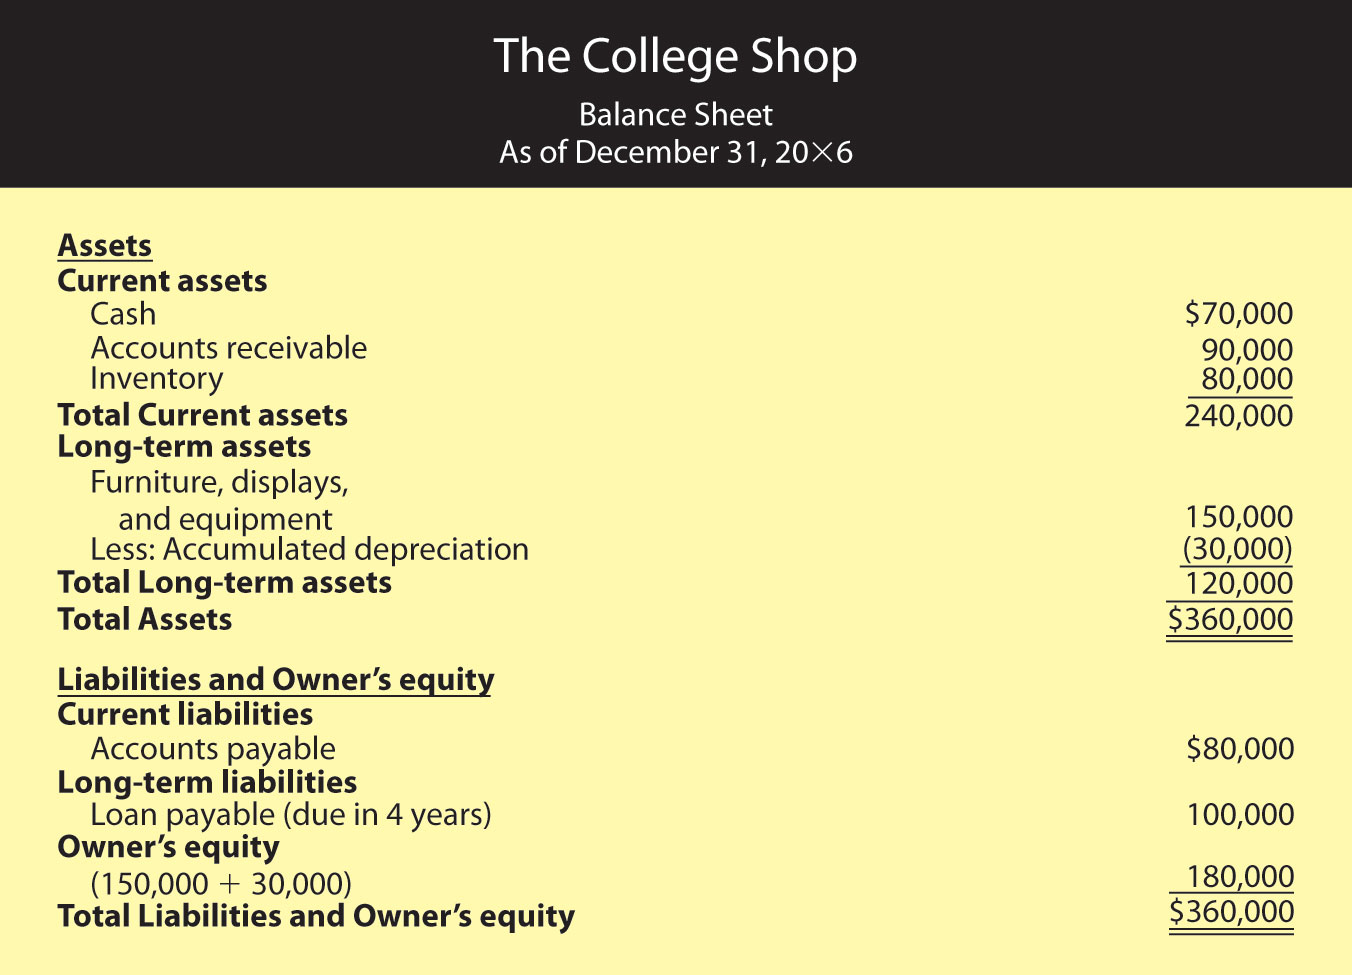 End-of-Year Balance Sheet for The College Shop